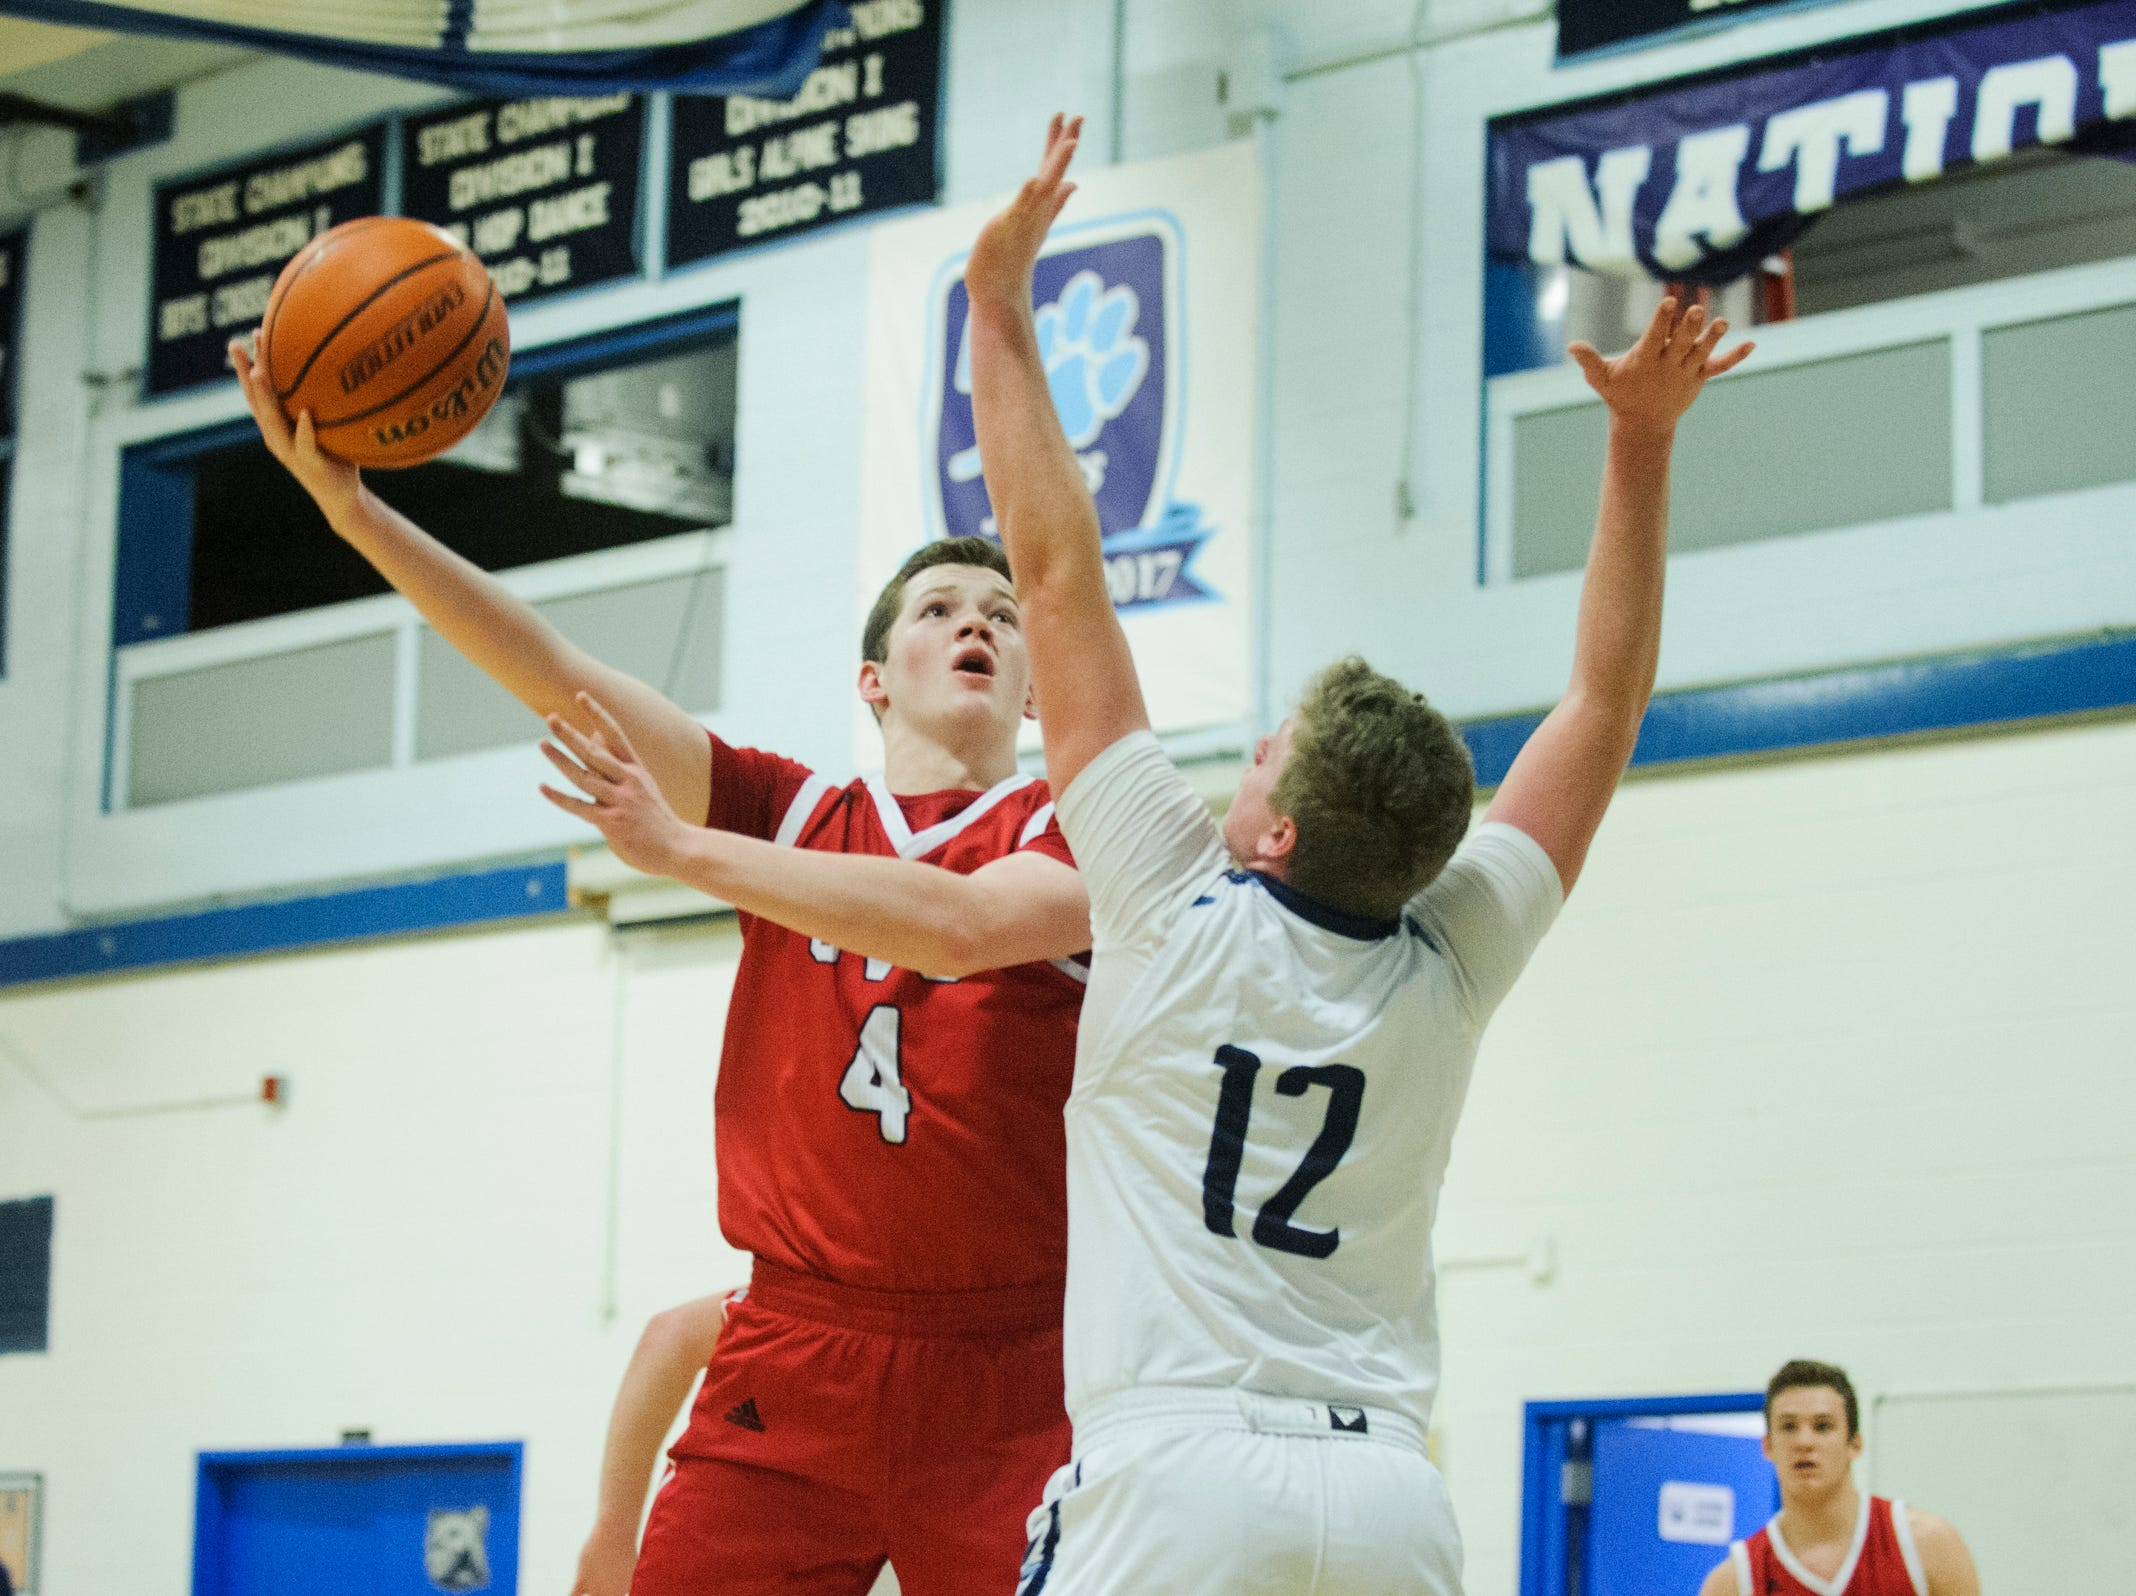 CVU's Mason Otley (4) leaps over MMU's Asa Carlson (12) for a lay up during the boys basketball game between the Champlain Valley Union Redhawks and the Mount Mansfield Cougars at MMU High School on Tuesday night January 22, 2019 in Jericho.